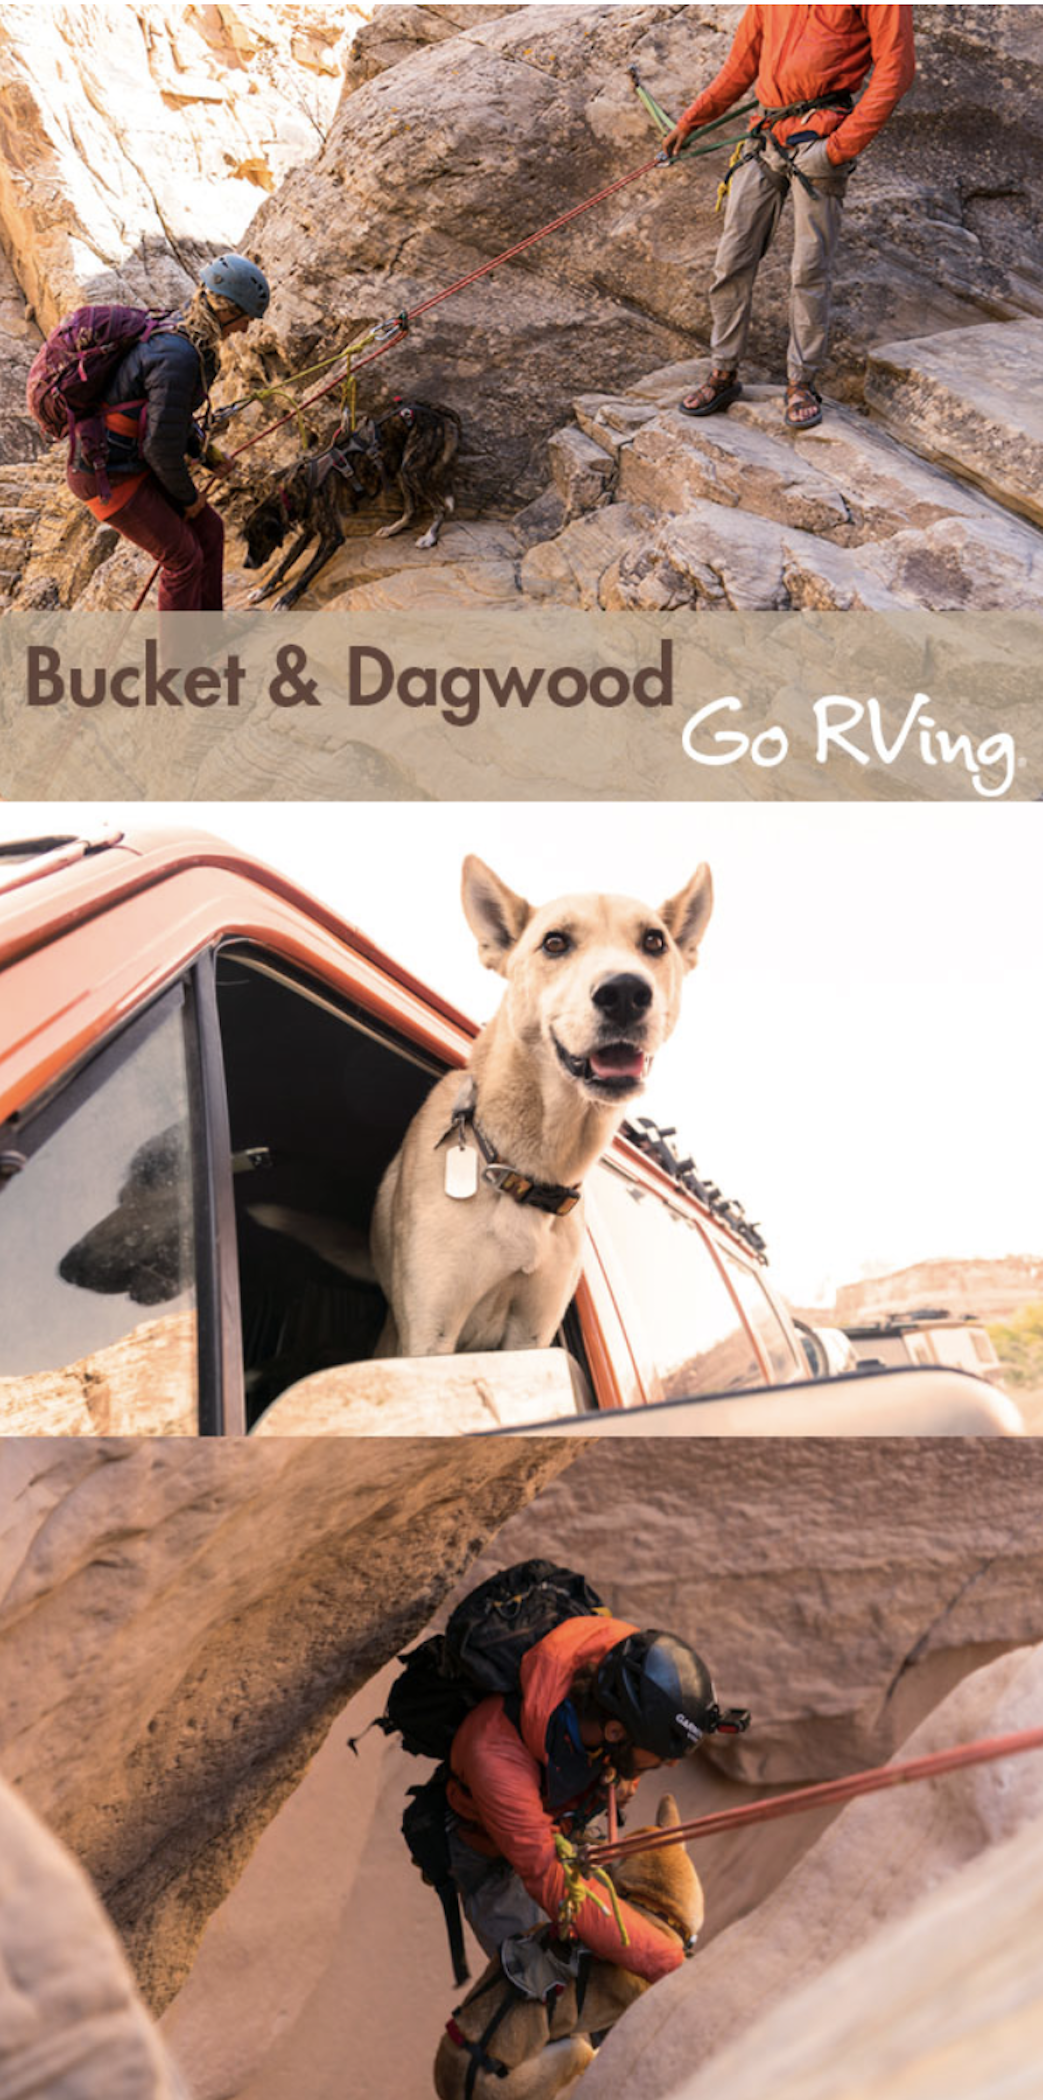 Check Out A Day In The Life Of This Rvpet In Southern Utah Gorving In 2020 Rv Pet Four Legged Pets